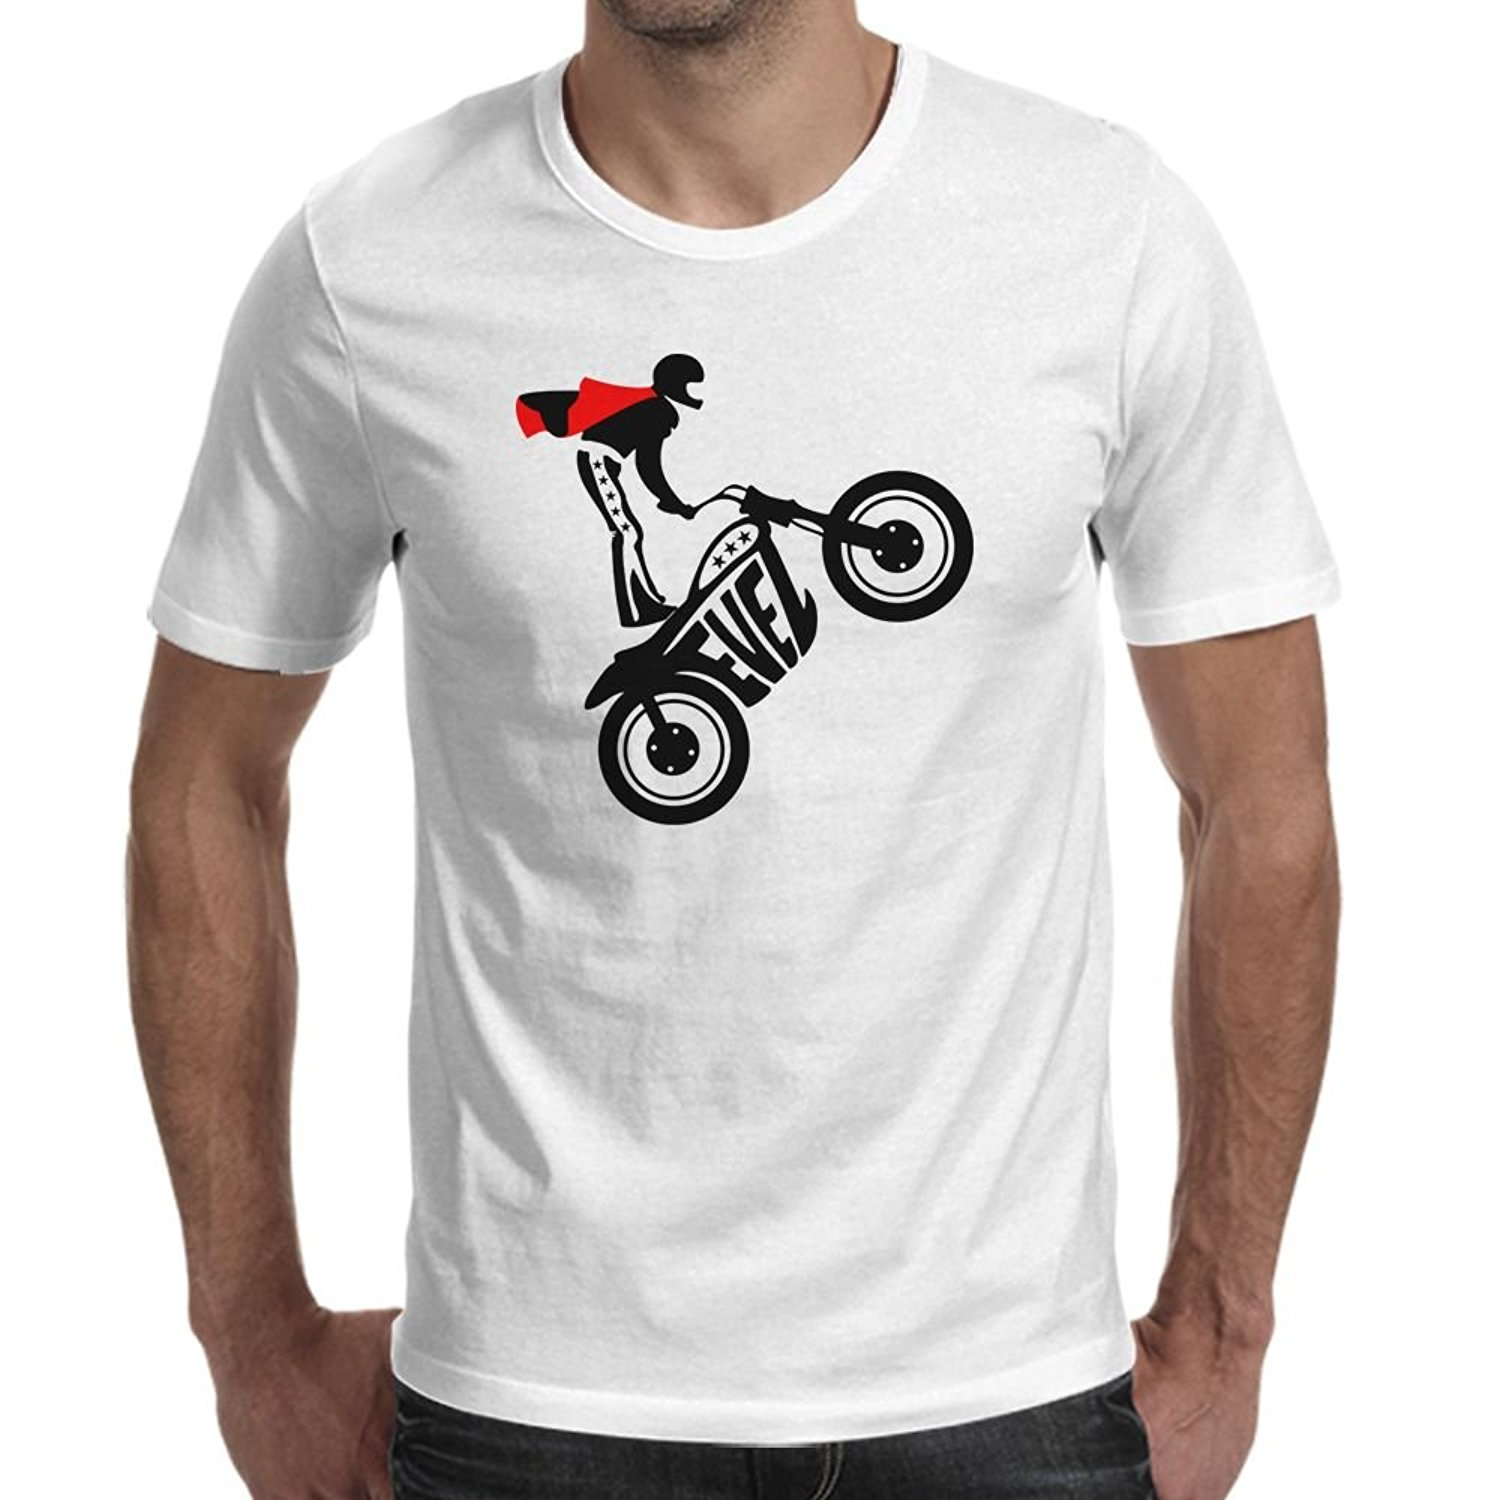 2017 New Brand Hot Sale 100 % Cotton Evel Knievel Motorcycle Cool Custom Fashion Tee Shirts Top Tees Free Shipping